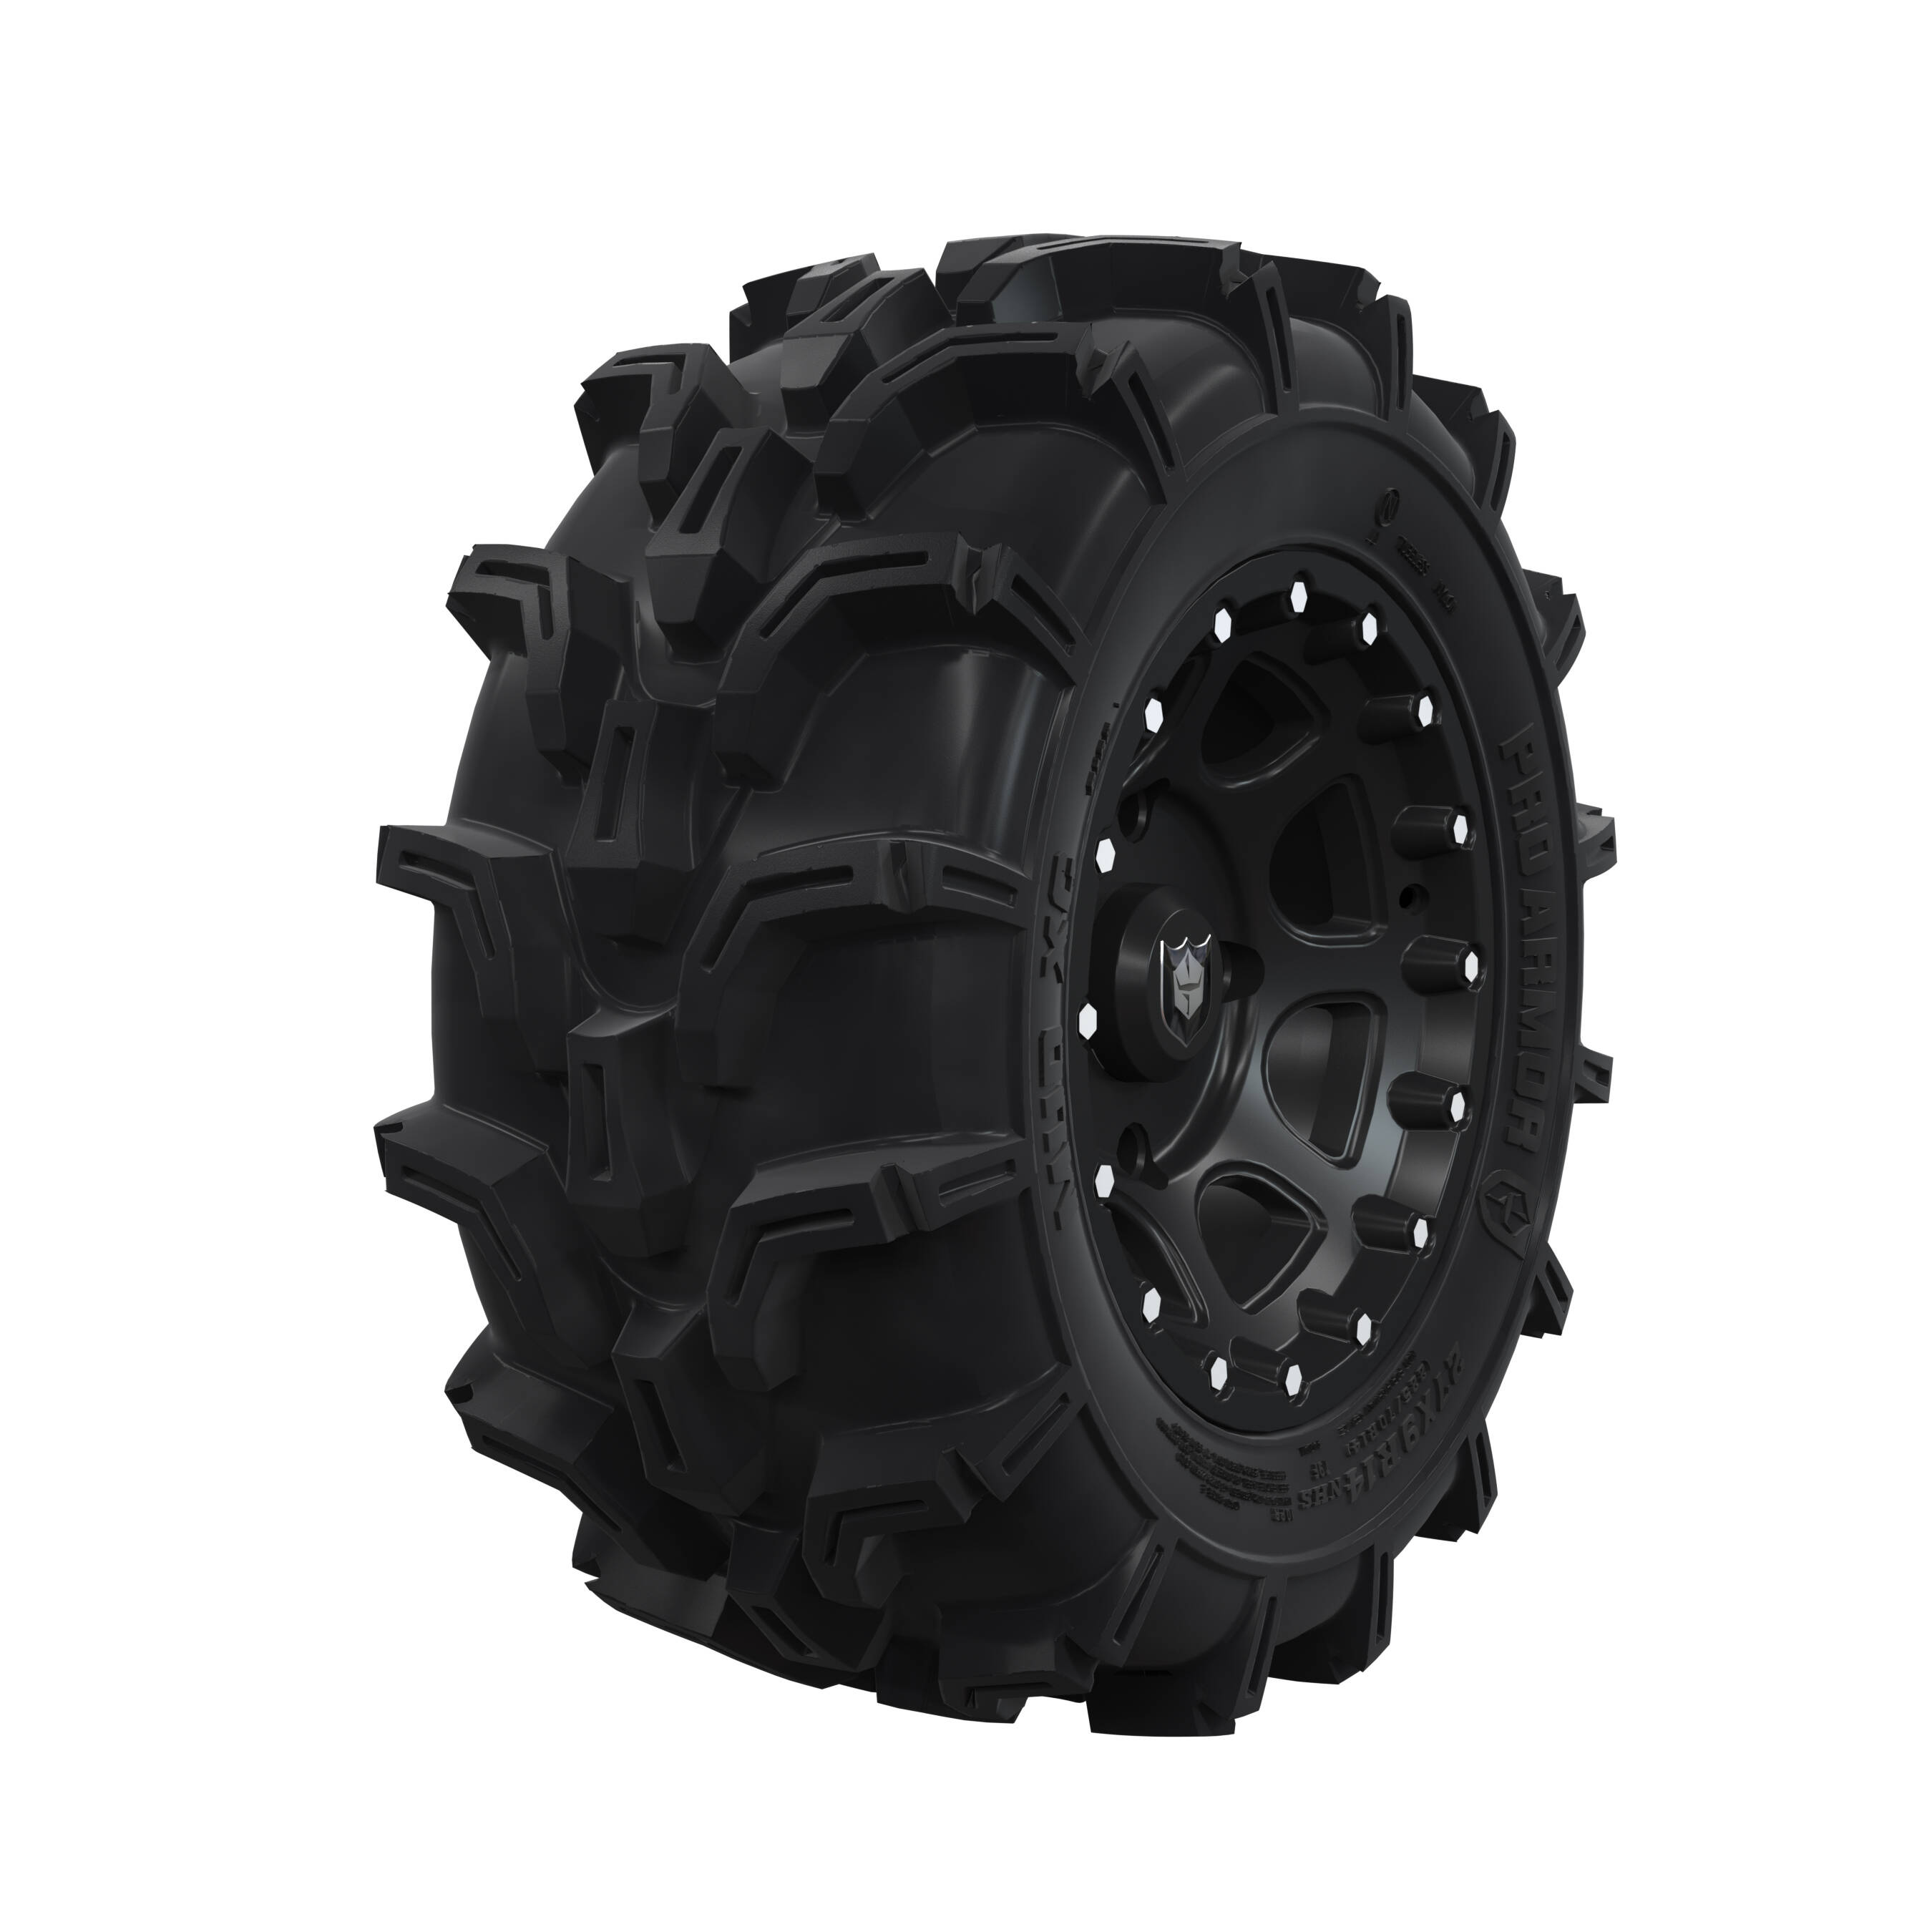 "Pro Amor® Wheel & Tire Set: Mud XC - Shackle - Matte Black - 27""R14"